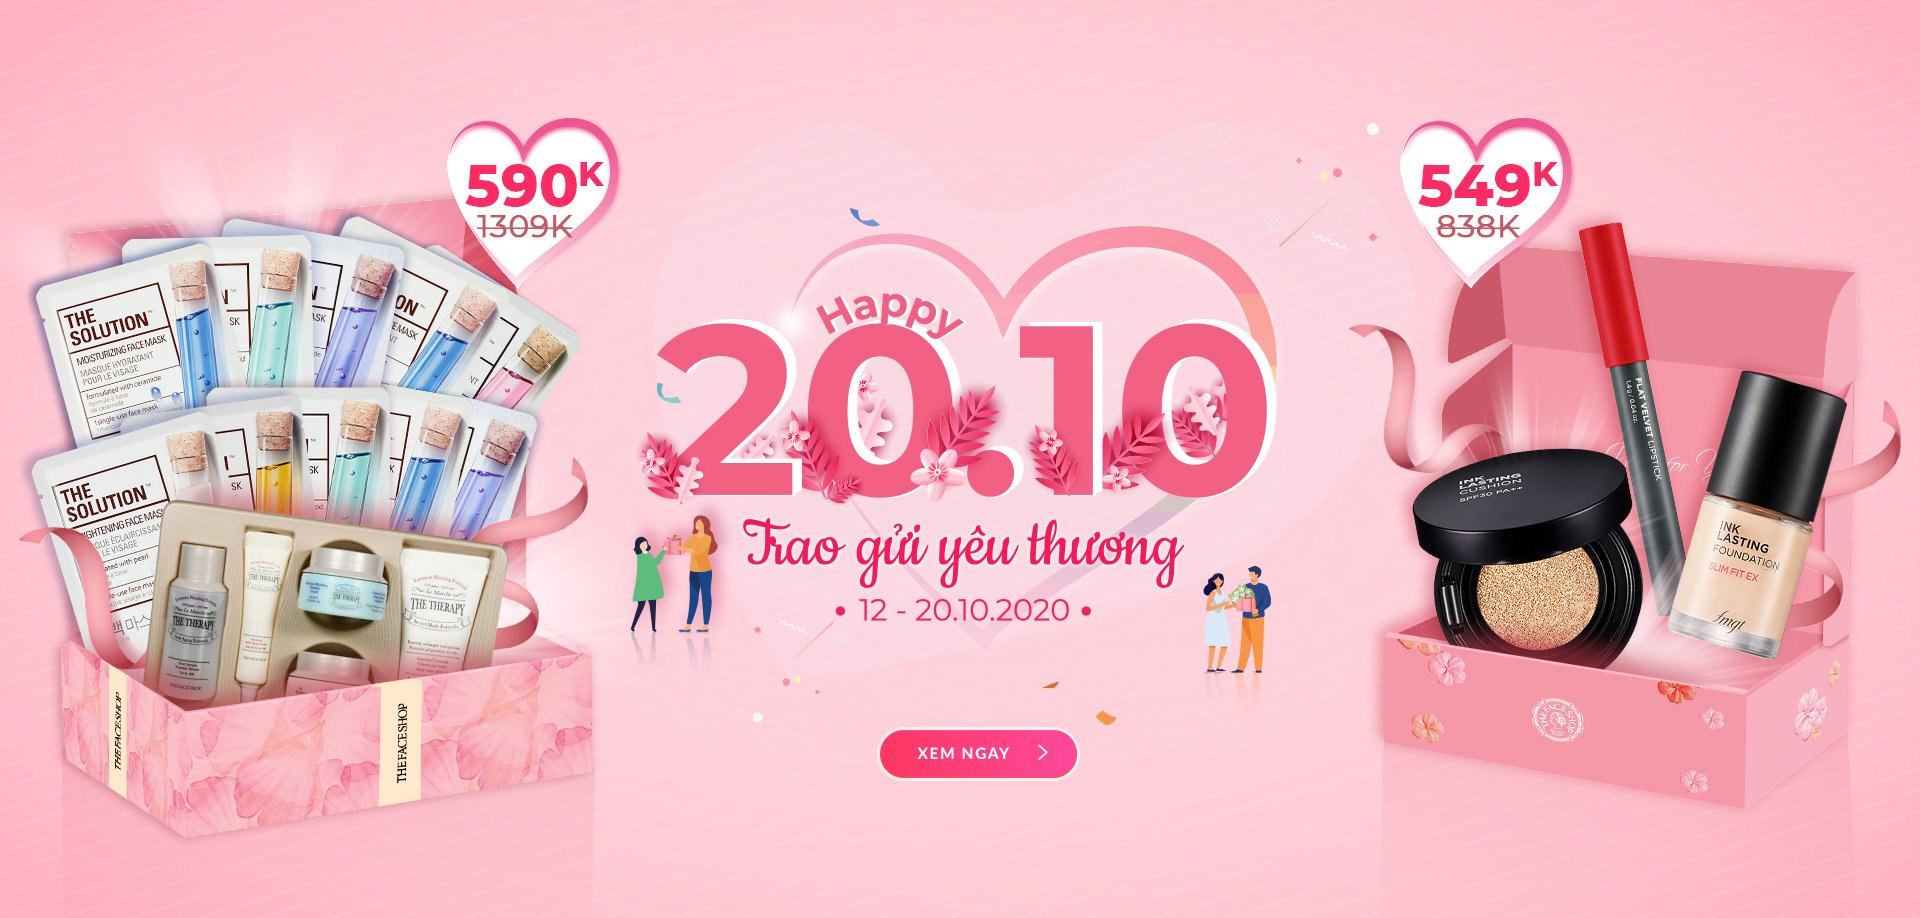 HAPPY WOMEN DAY 20.10 - GIẢM ĐẾN 50%